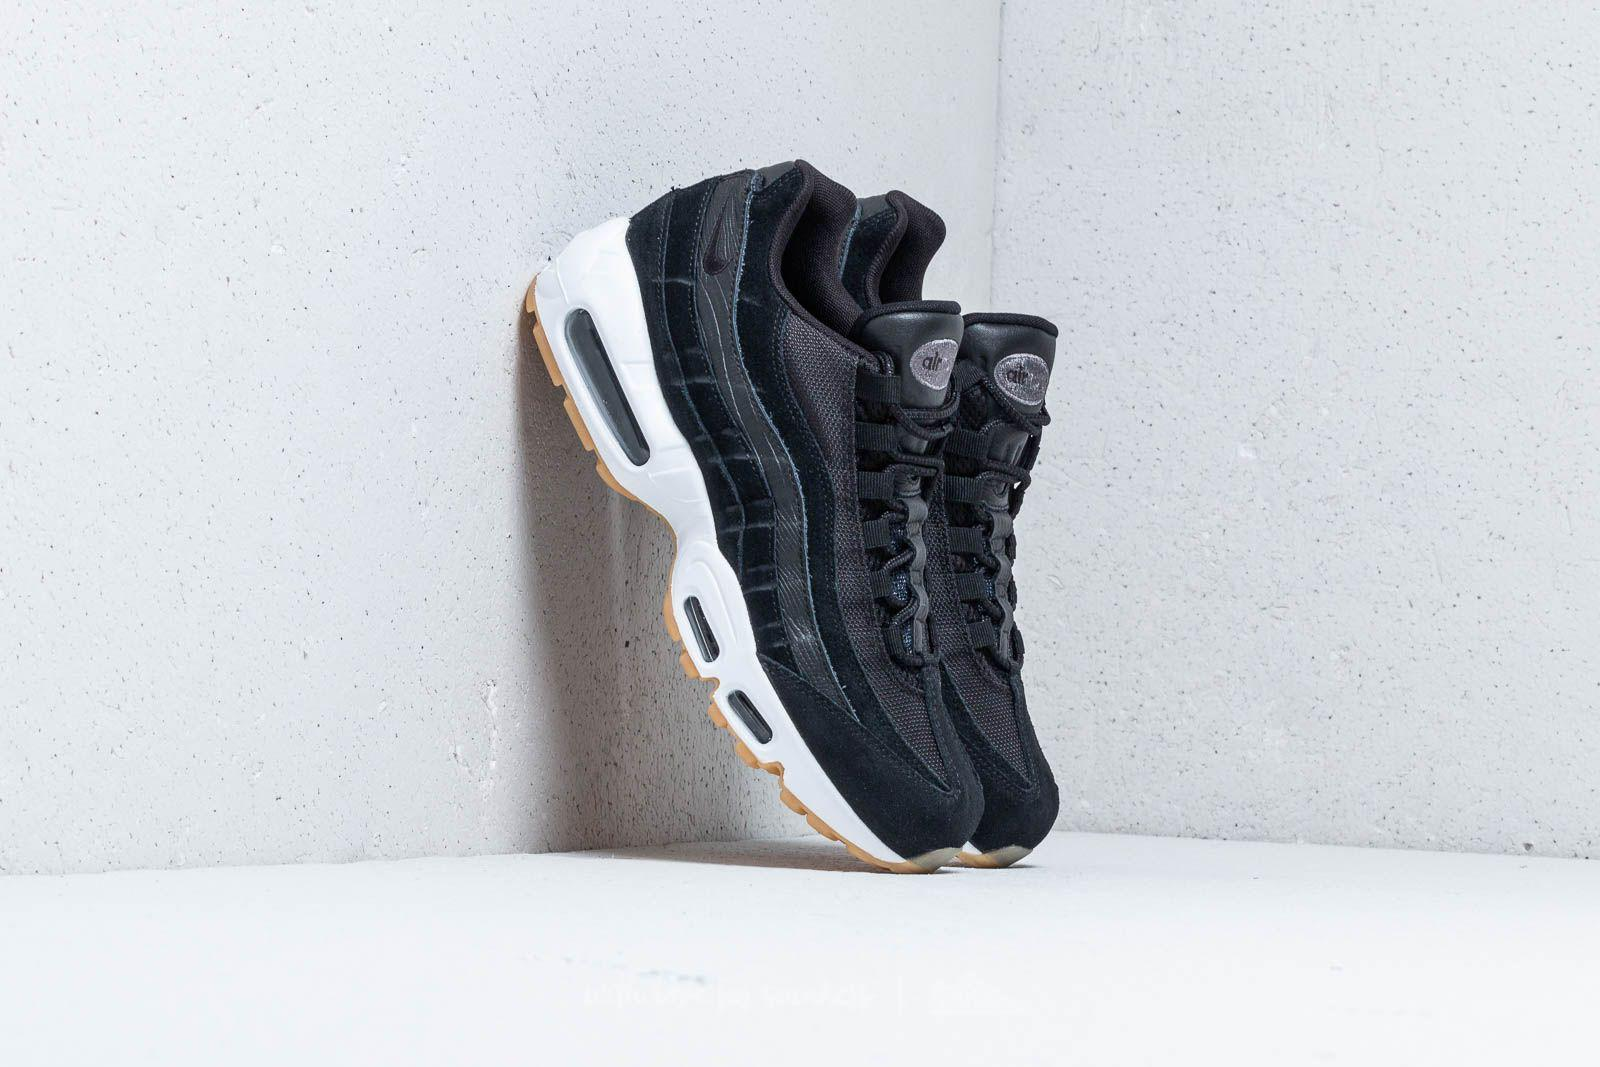 Lyst - Nike Air Max 95 Premium Black  Black-dark Grey-white in Black ... 524b488e3ca2